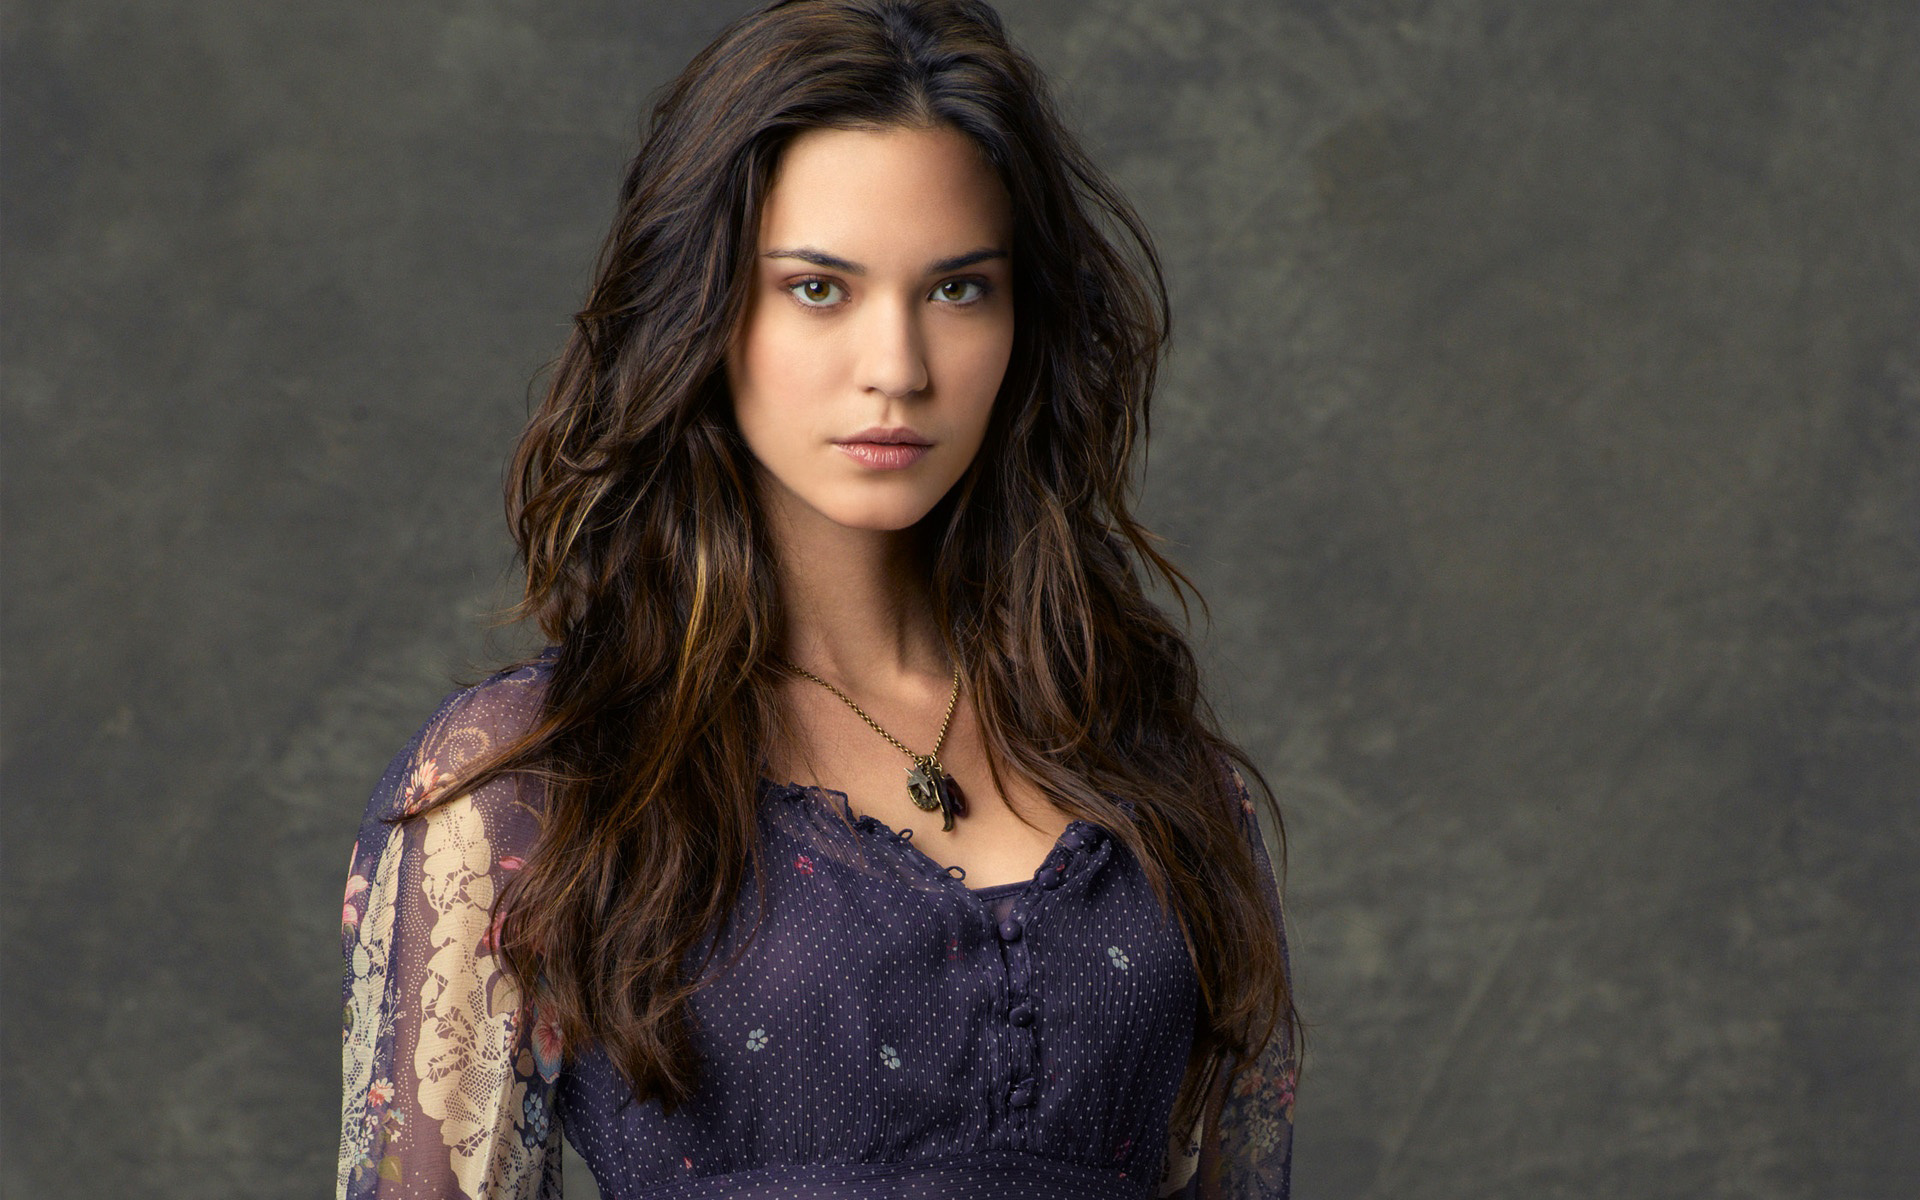 1920x1200 - Odette Annable Wallpapers 4